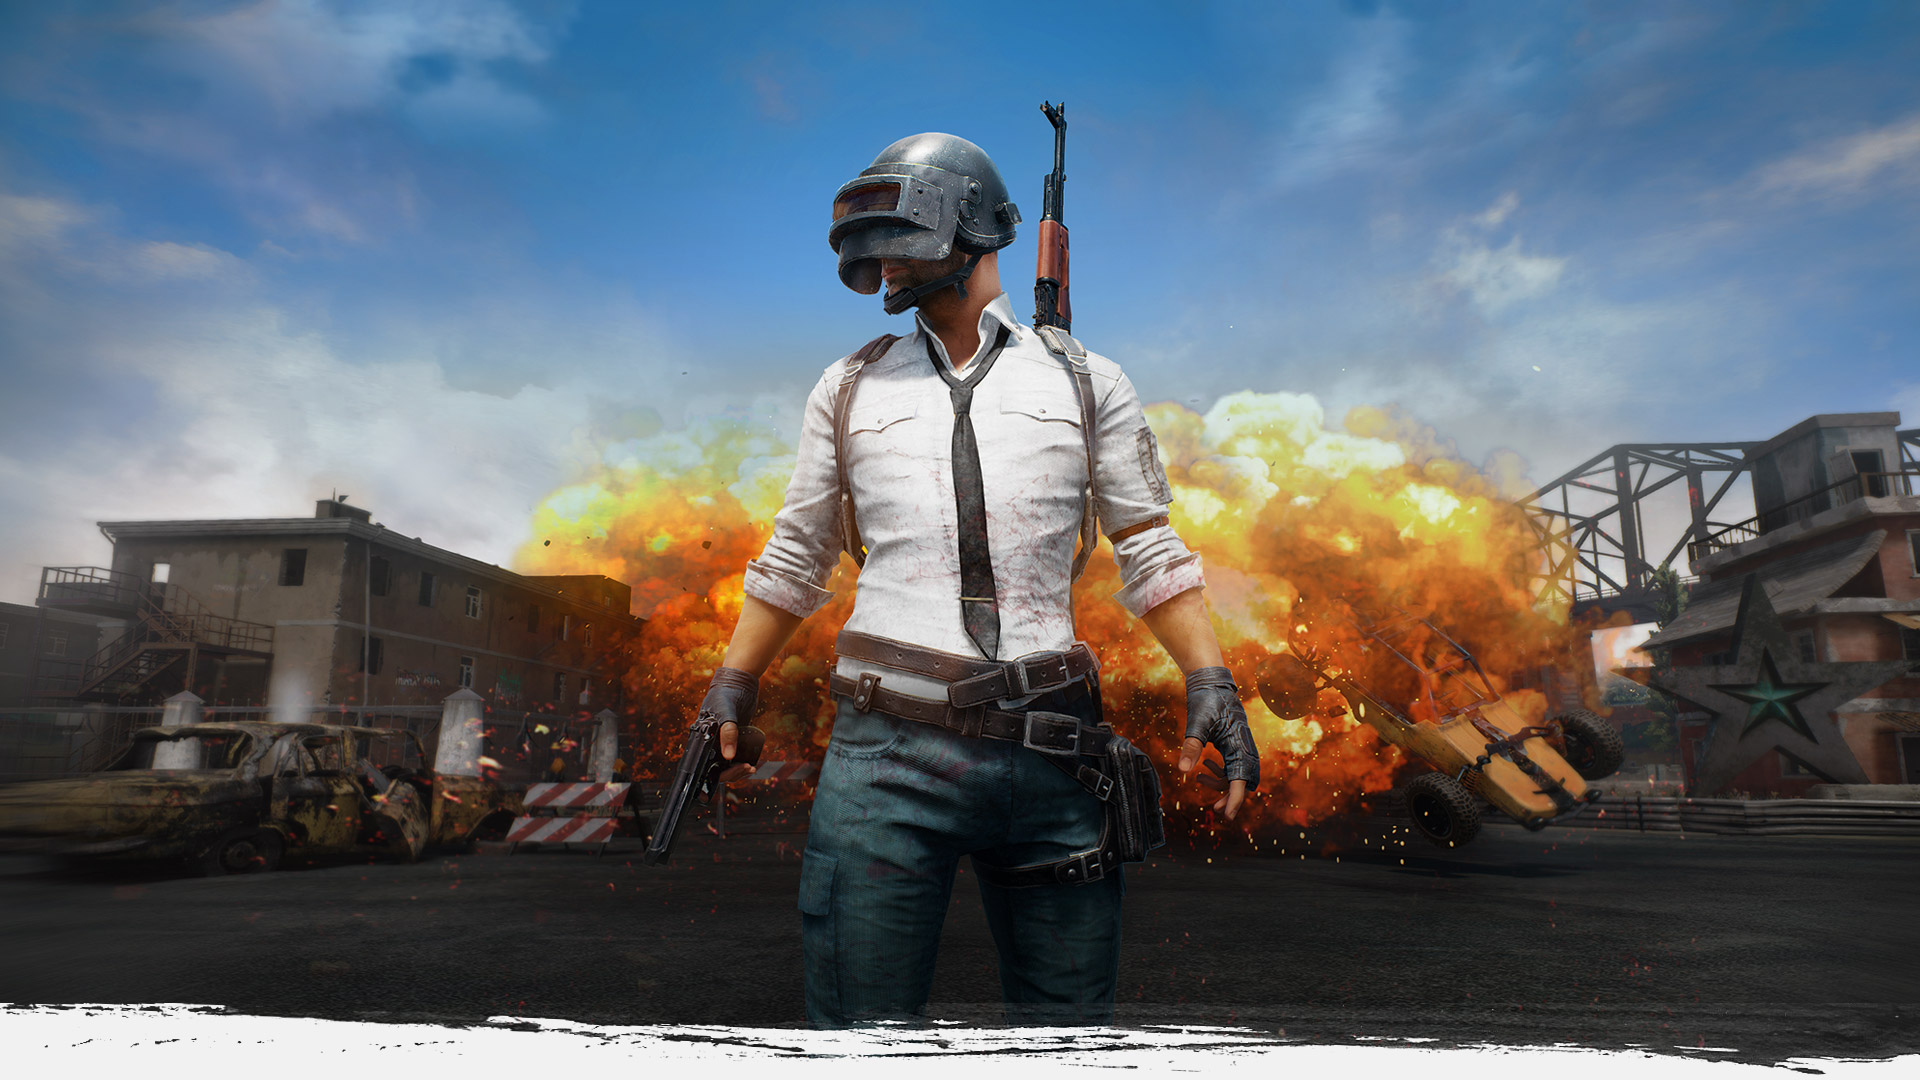 Free to play version of the battle royale game, PUBG, is currently in beta testing